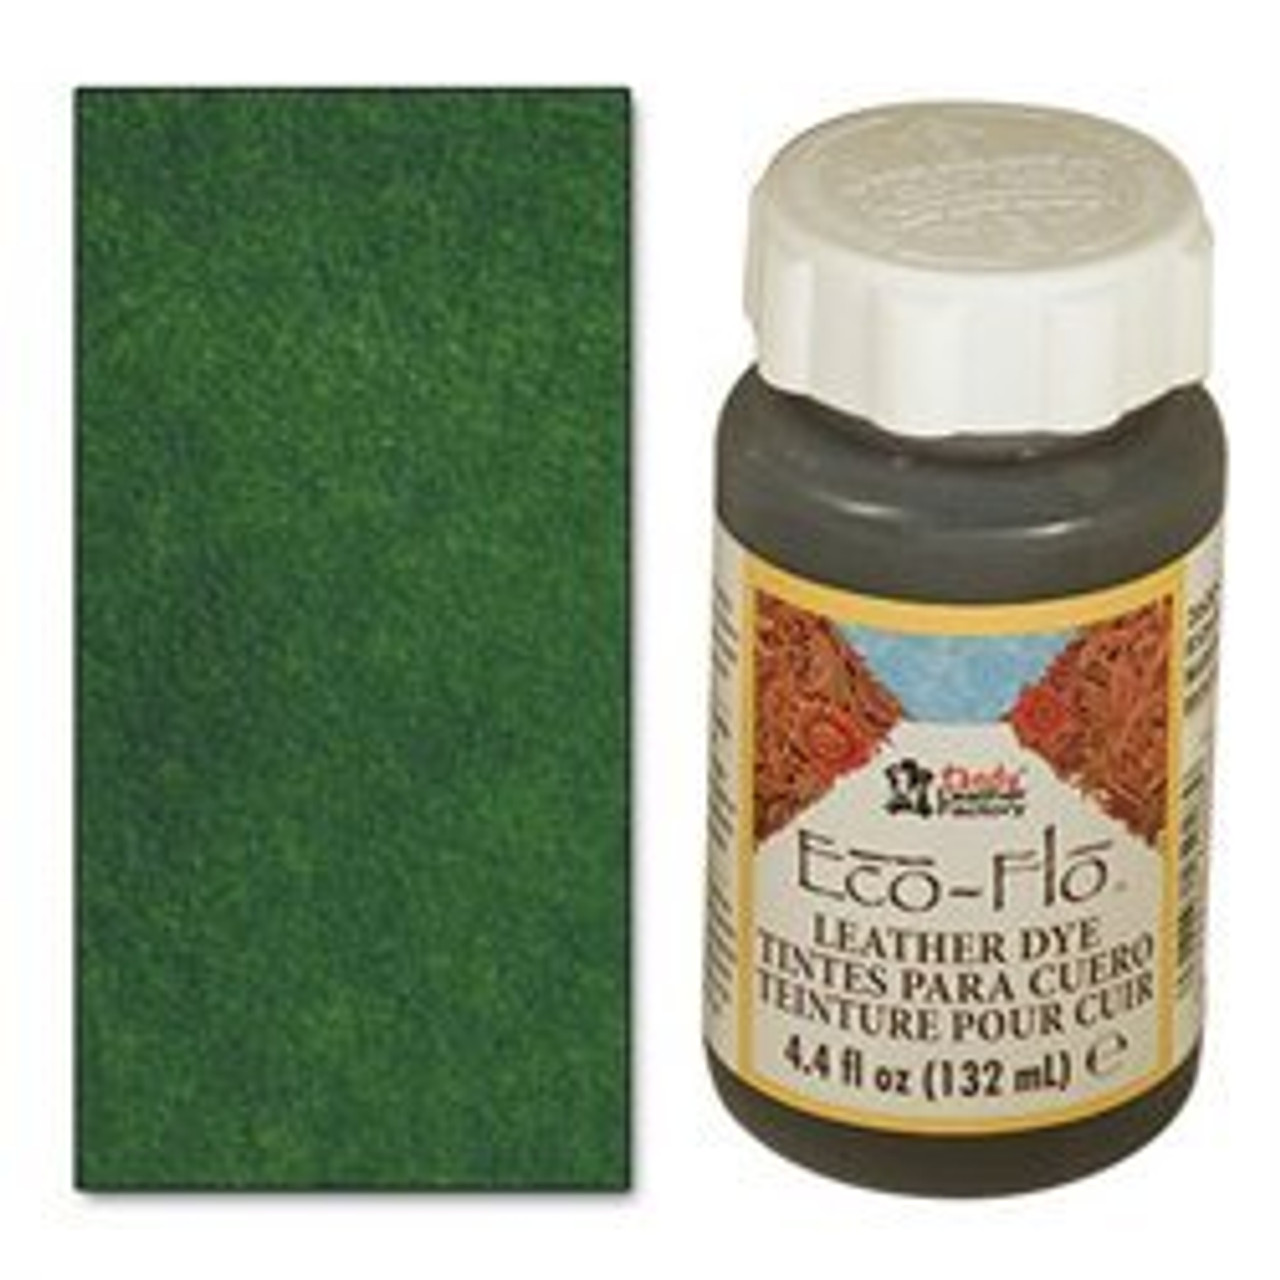 Forest Green Eco-Flo Leather Dye 4.4 oz (132 mL) 2600-14